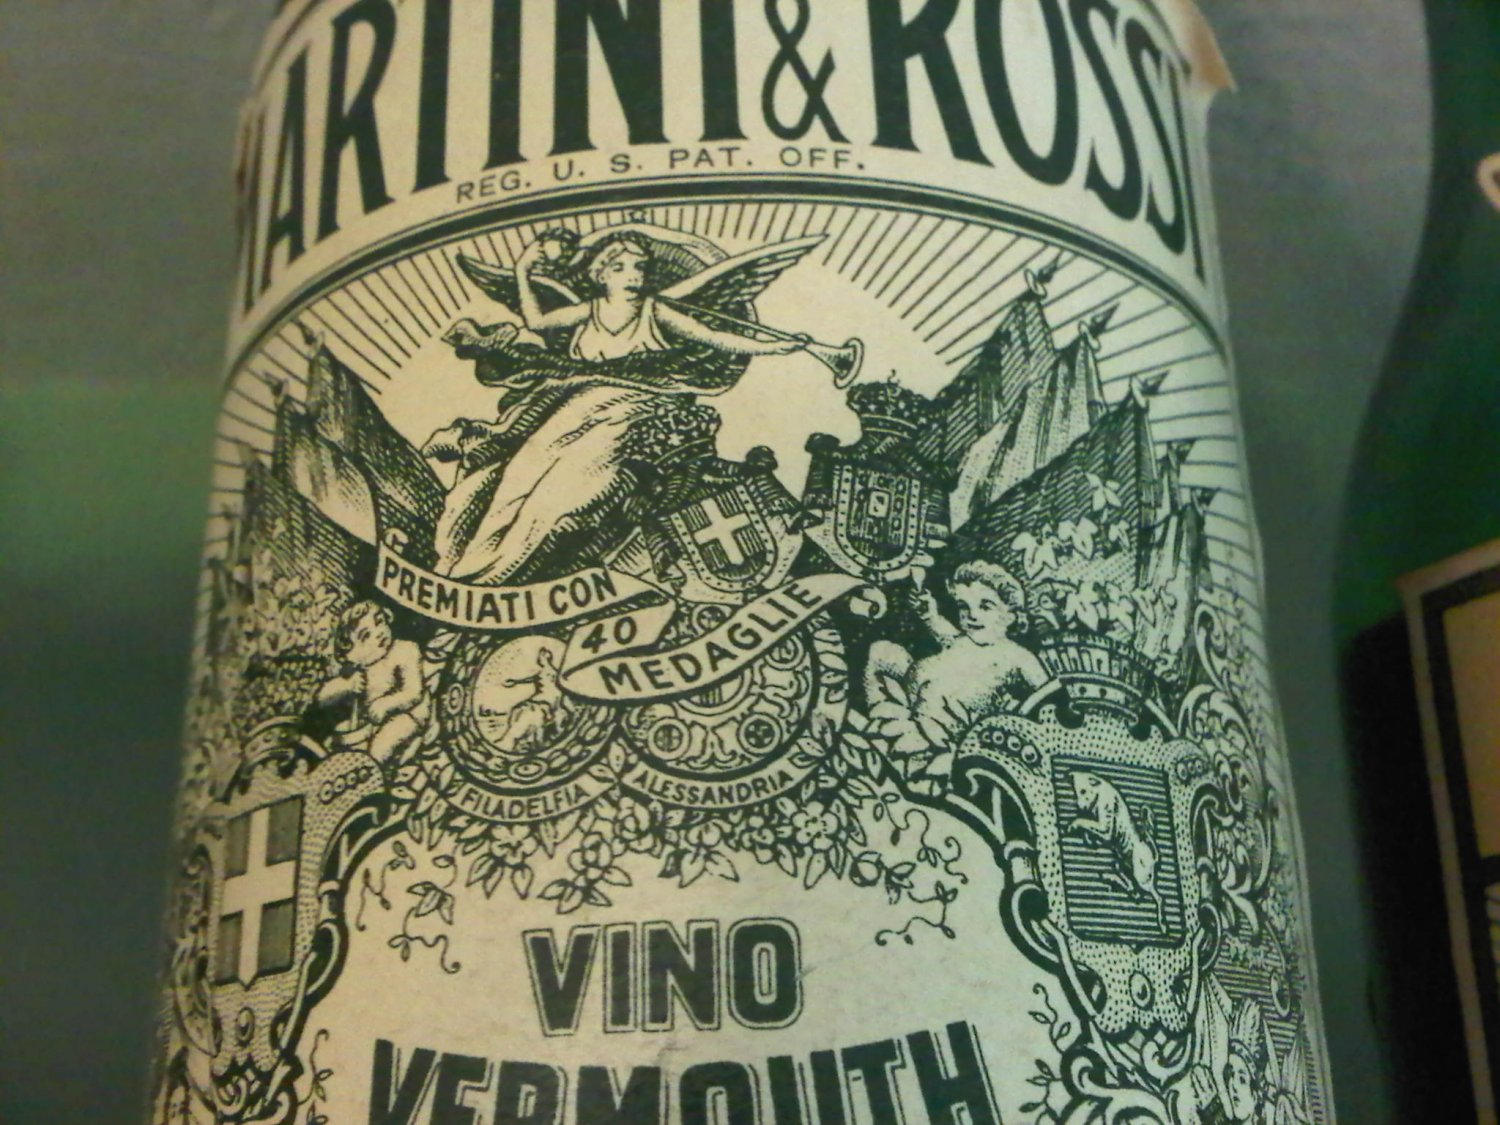 Martini & Rossi Vintage Vermouth Bottle Extra Dry 750 ml